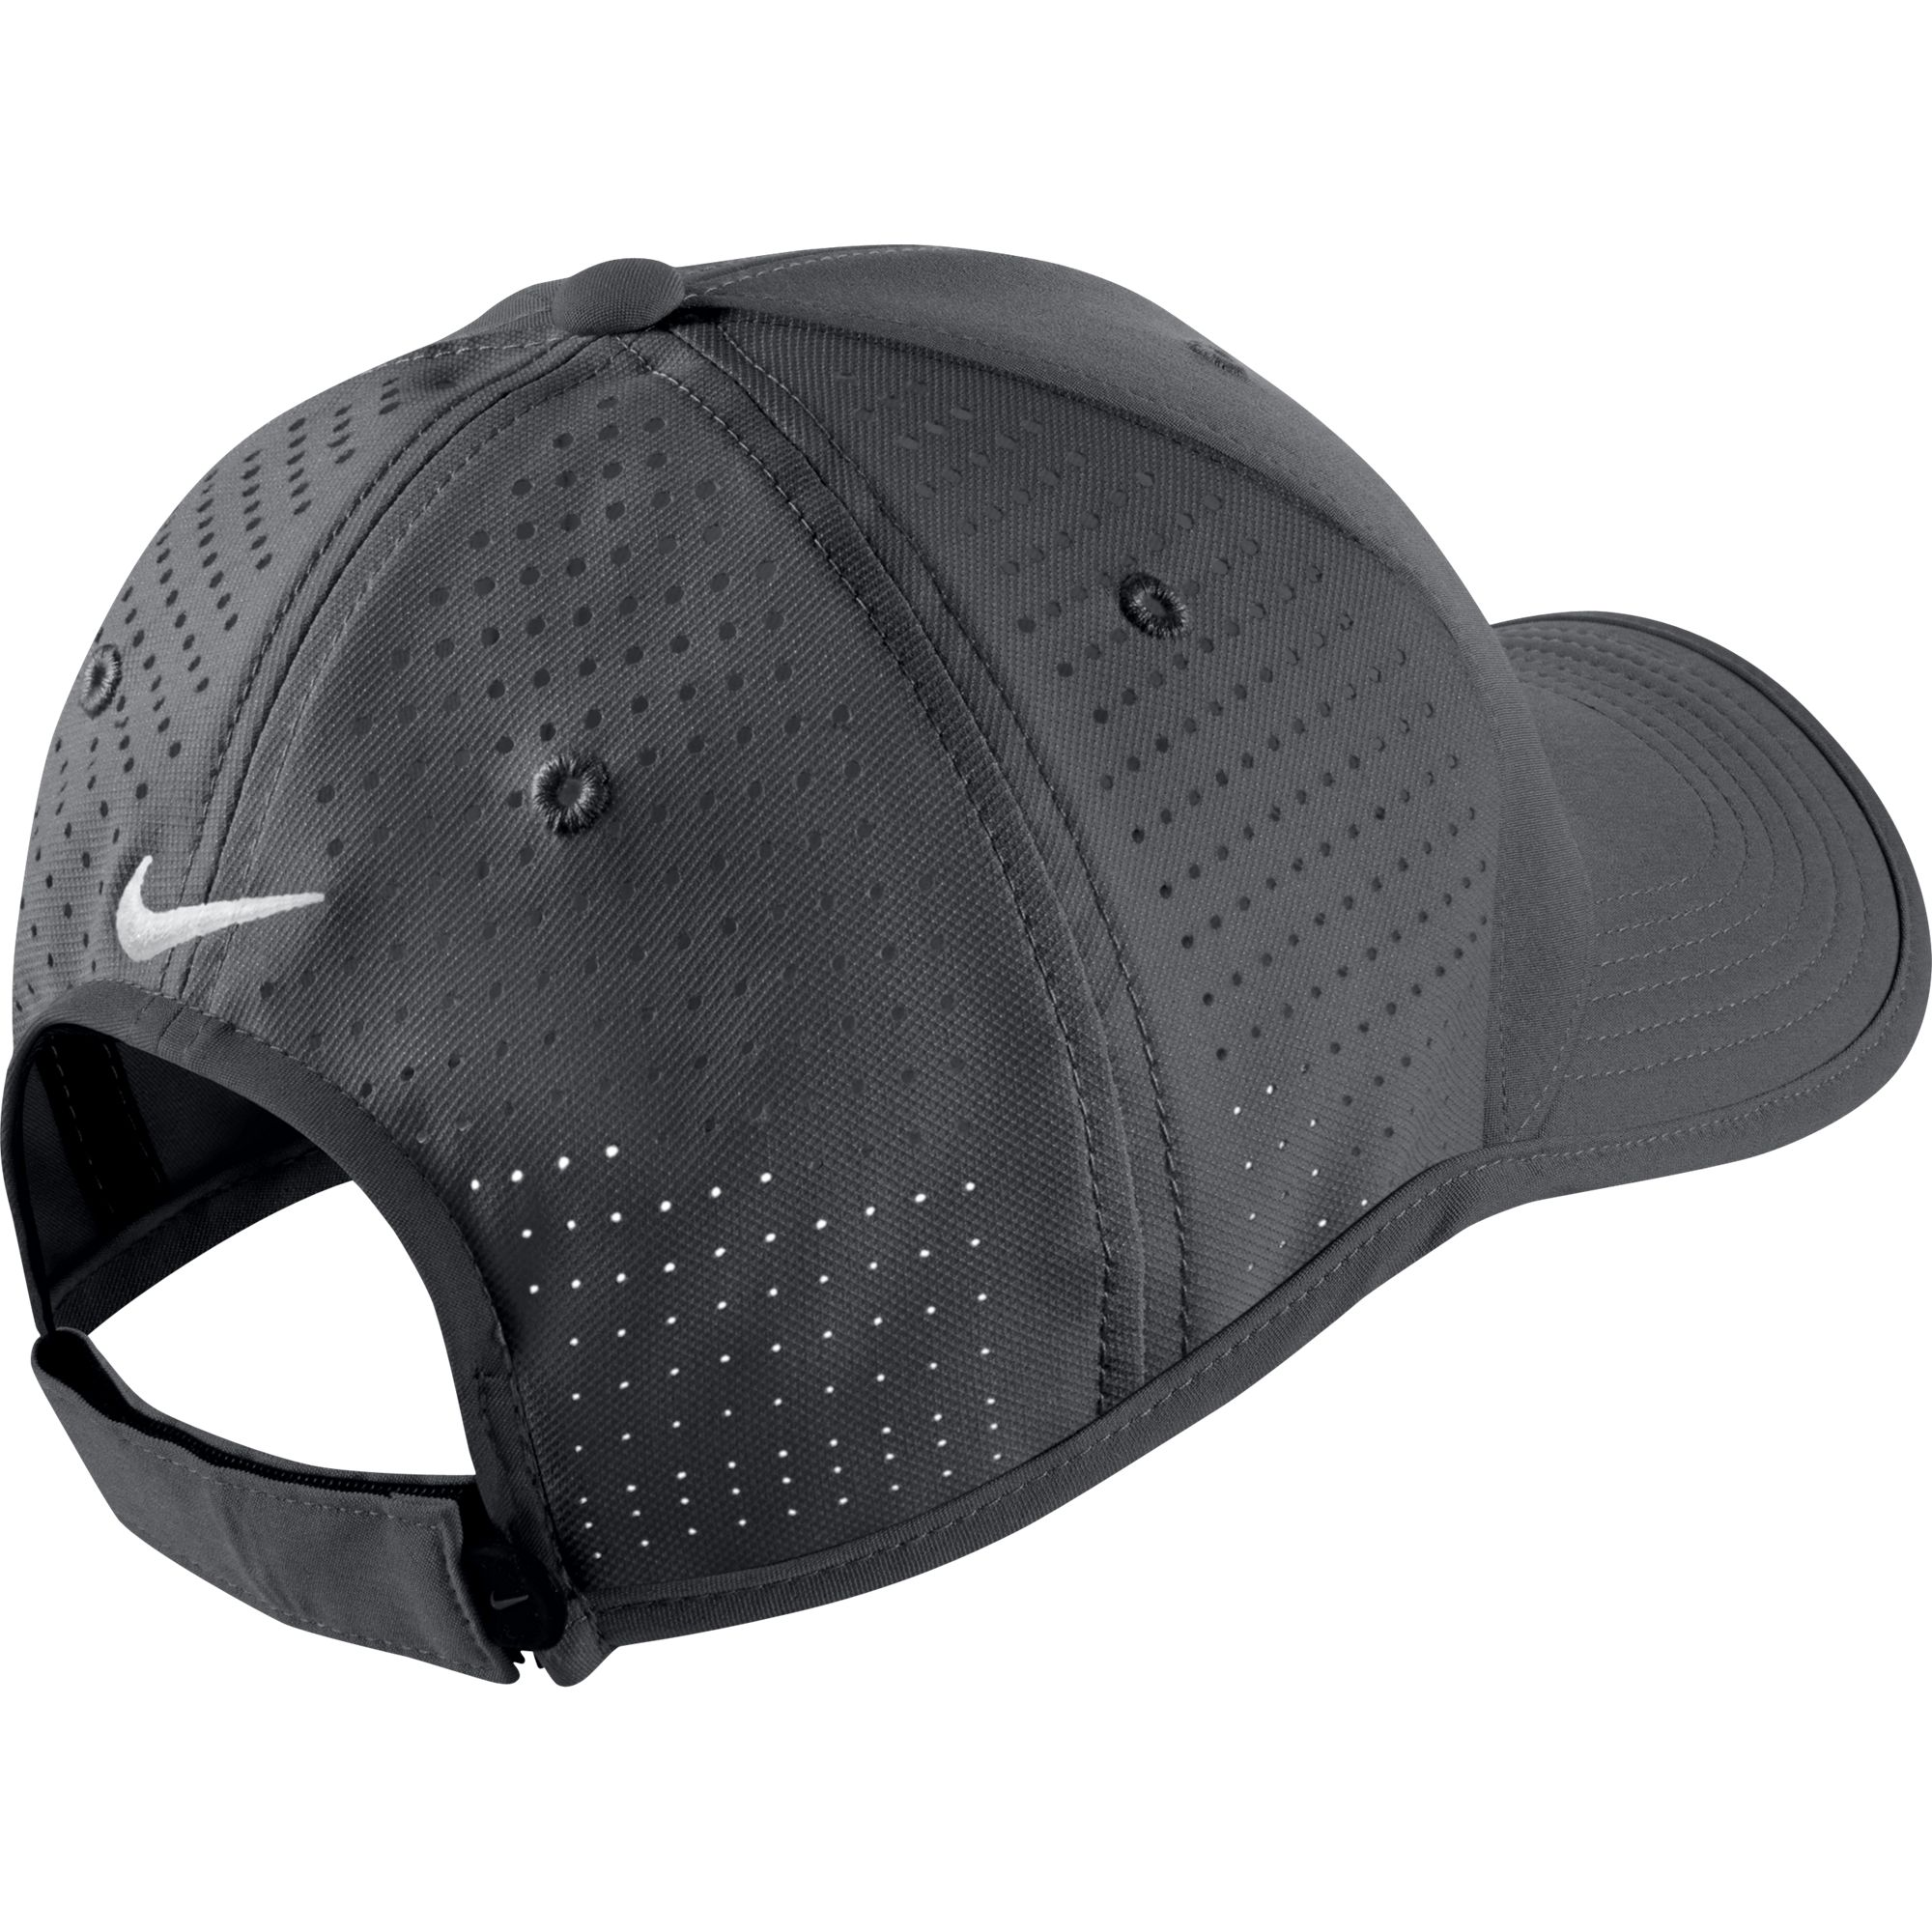 f4dc1e7de54 New Nike Golf 2016 TW Tiger Woods Ultralight Tour Adjustable Cap Hat ...